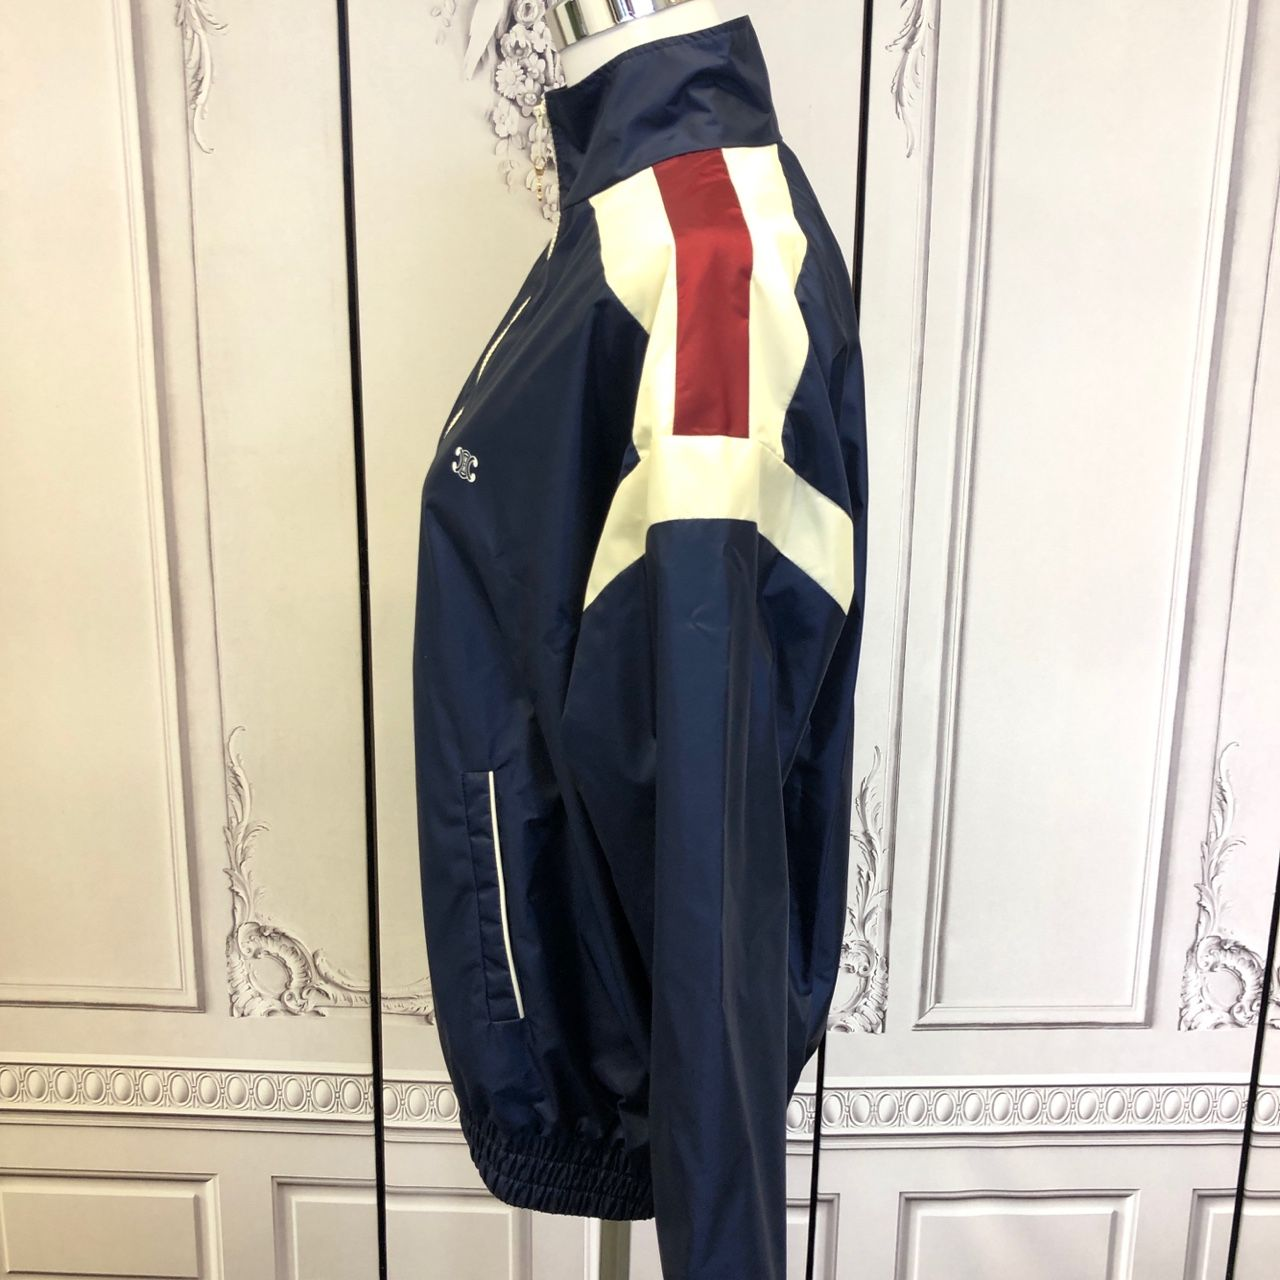 Celine WINDBREAKER IN LIGHTWEIGHT NYLON Navy / Bordeaux / Off White 2W378495M.07XW